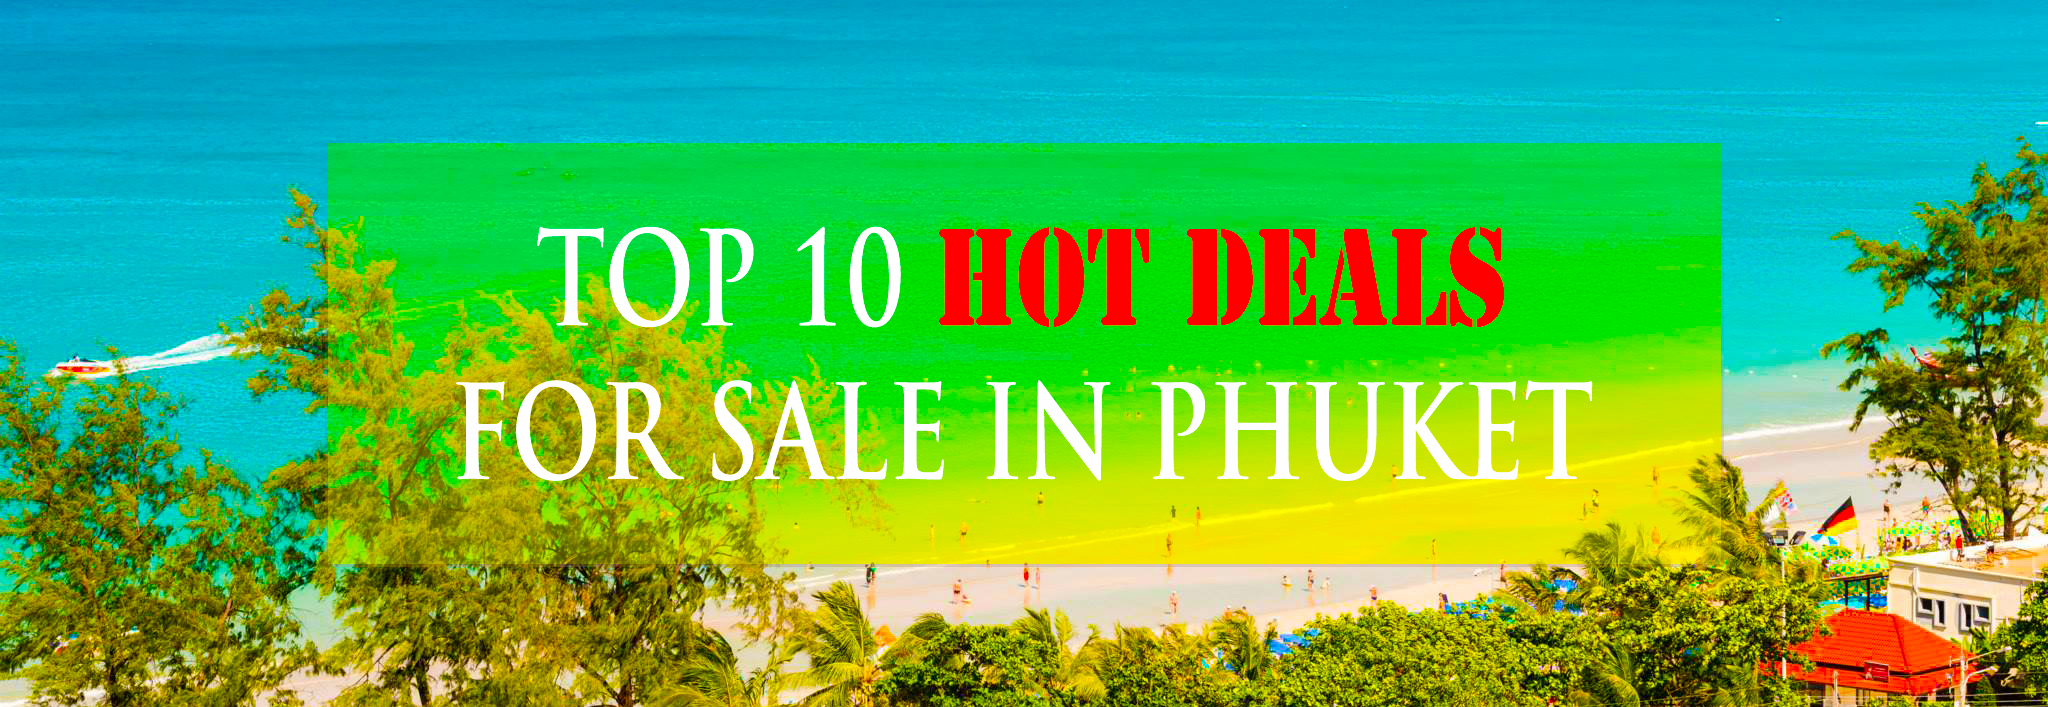 TOP 10 HOT DEALS FOR SALE in Phuket – Christmas 2016